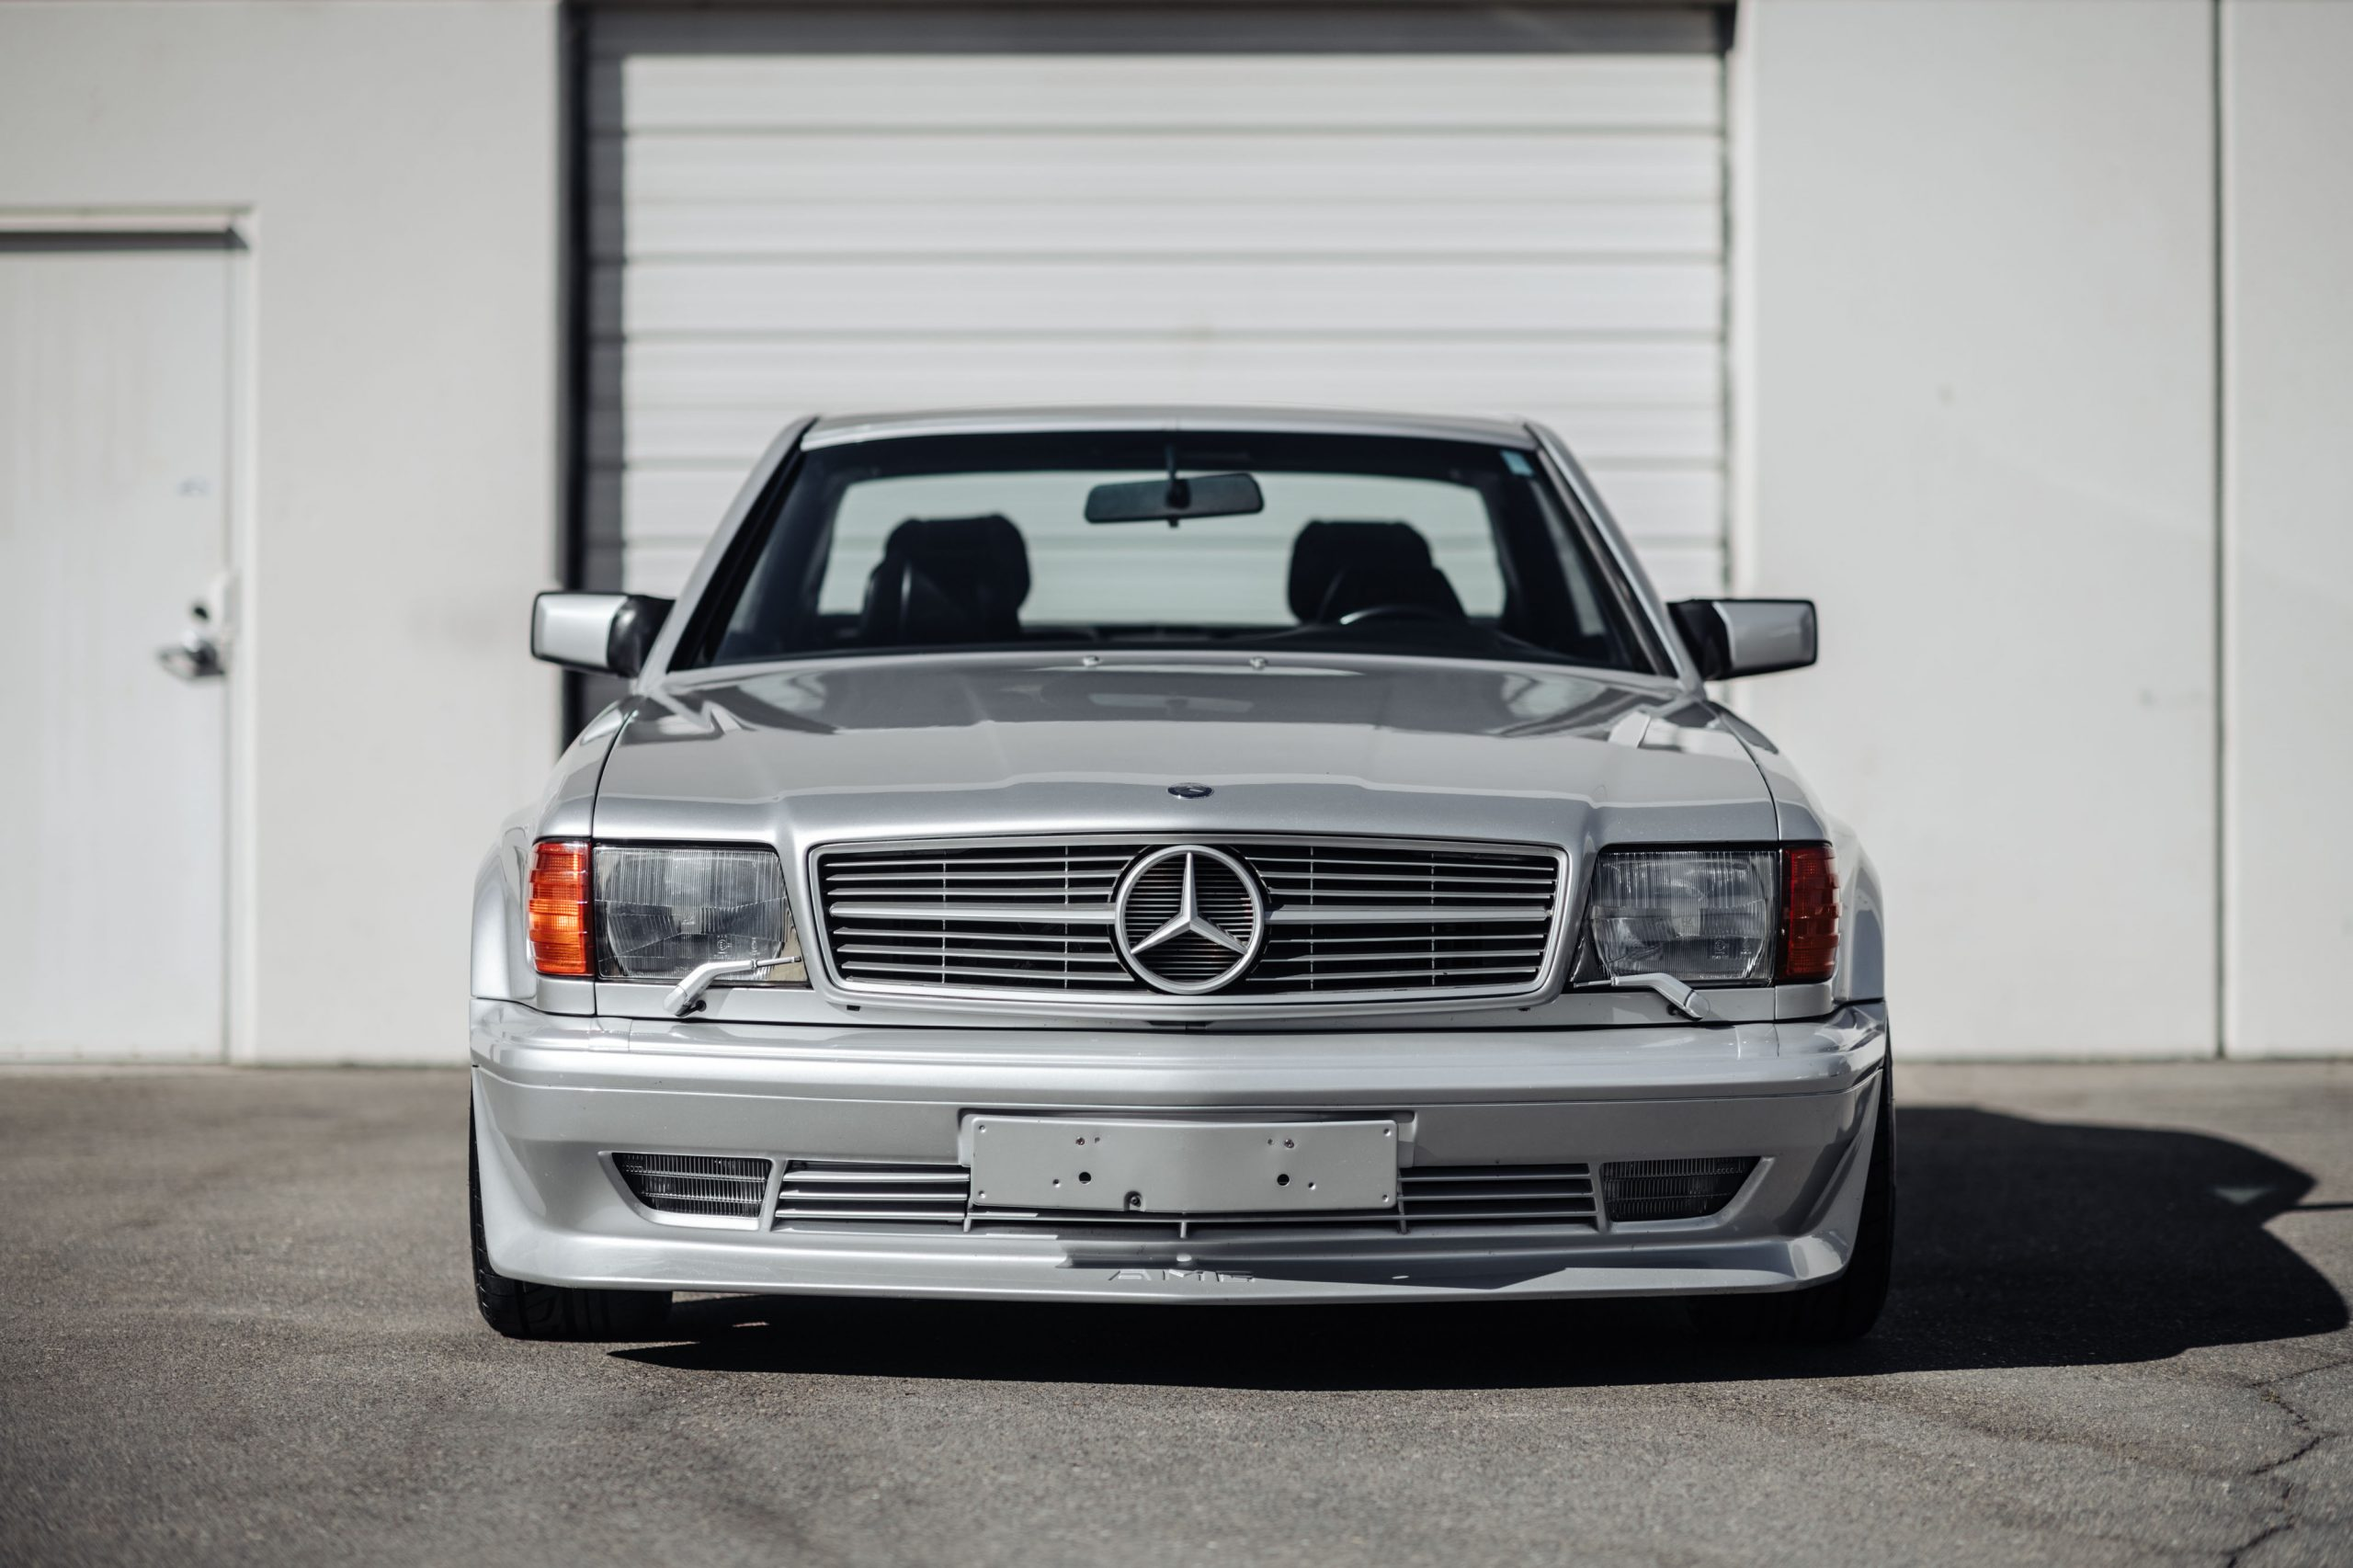 1989 Mercedes-Benz 560 SEC AMG 6.0 widebody